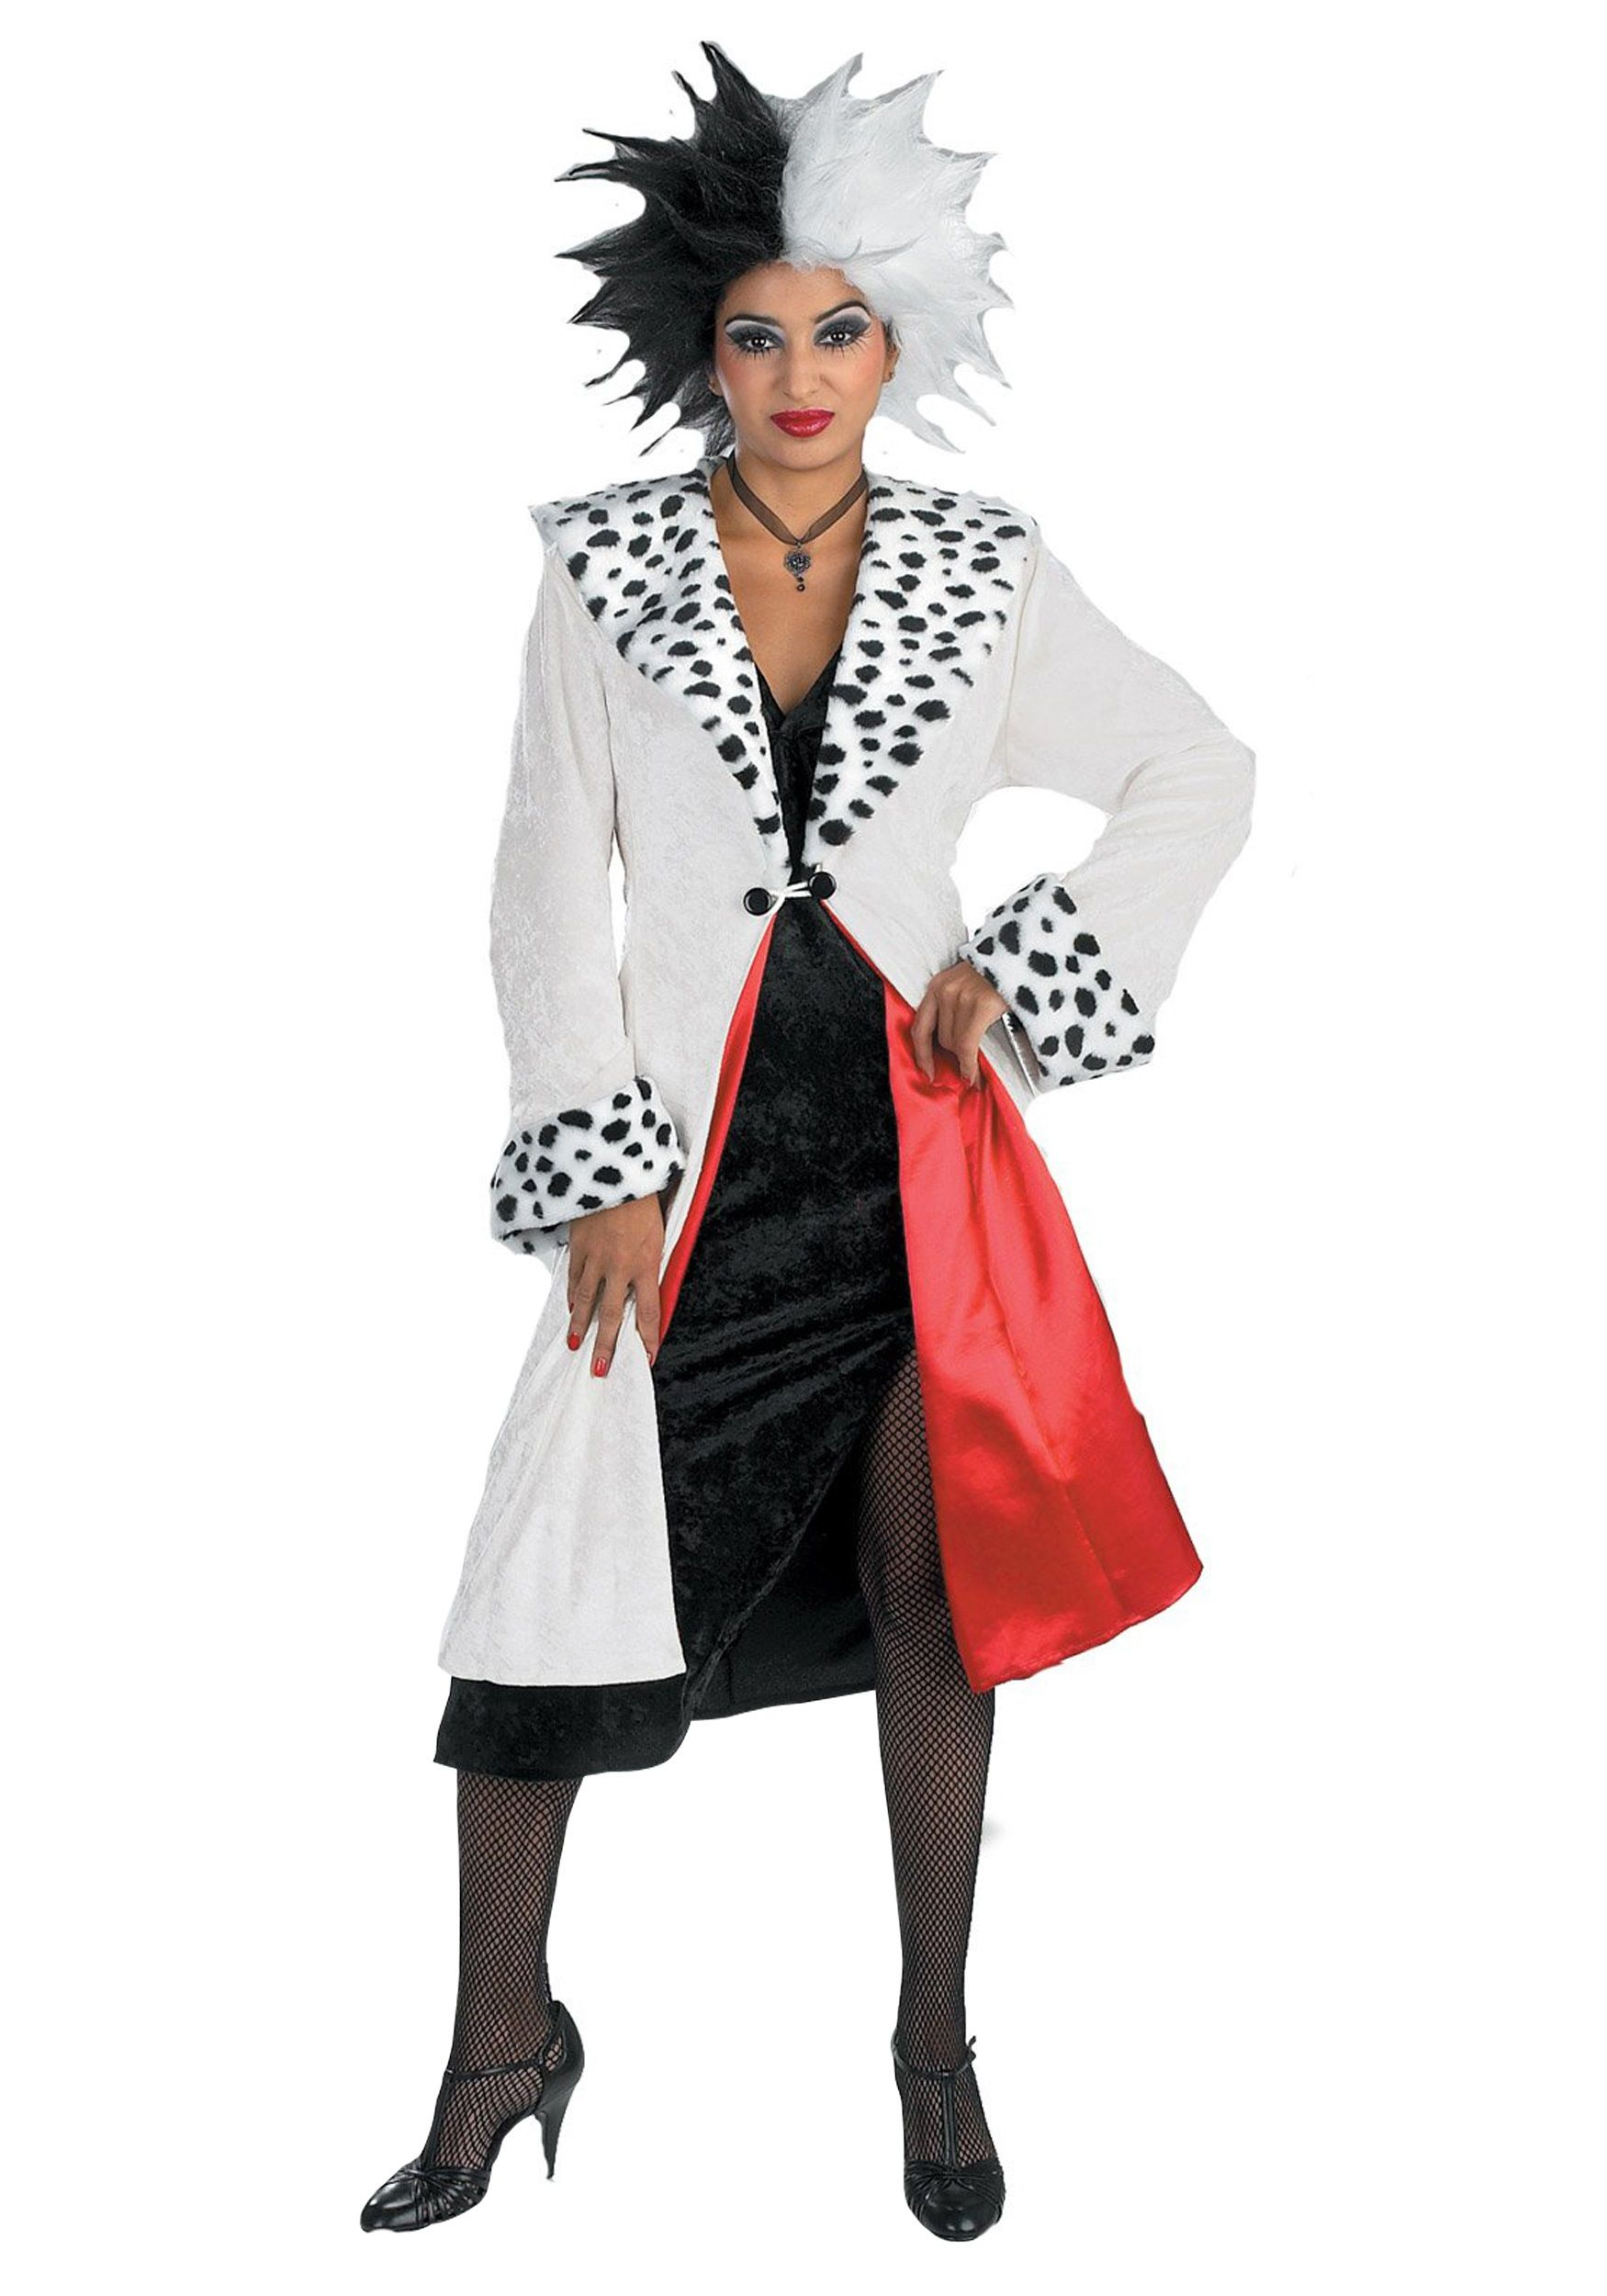 This Cruella De Vil Adult Costume includes a soft velvety